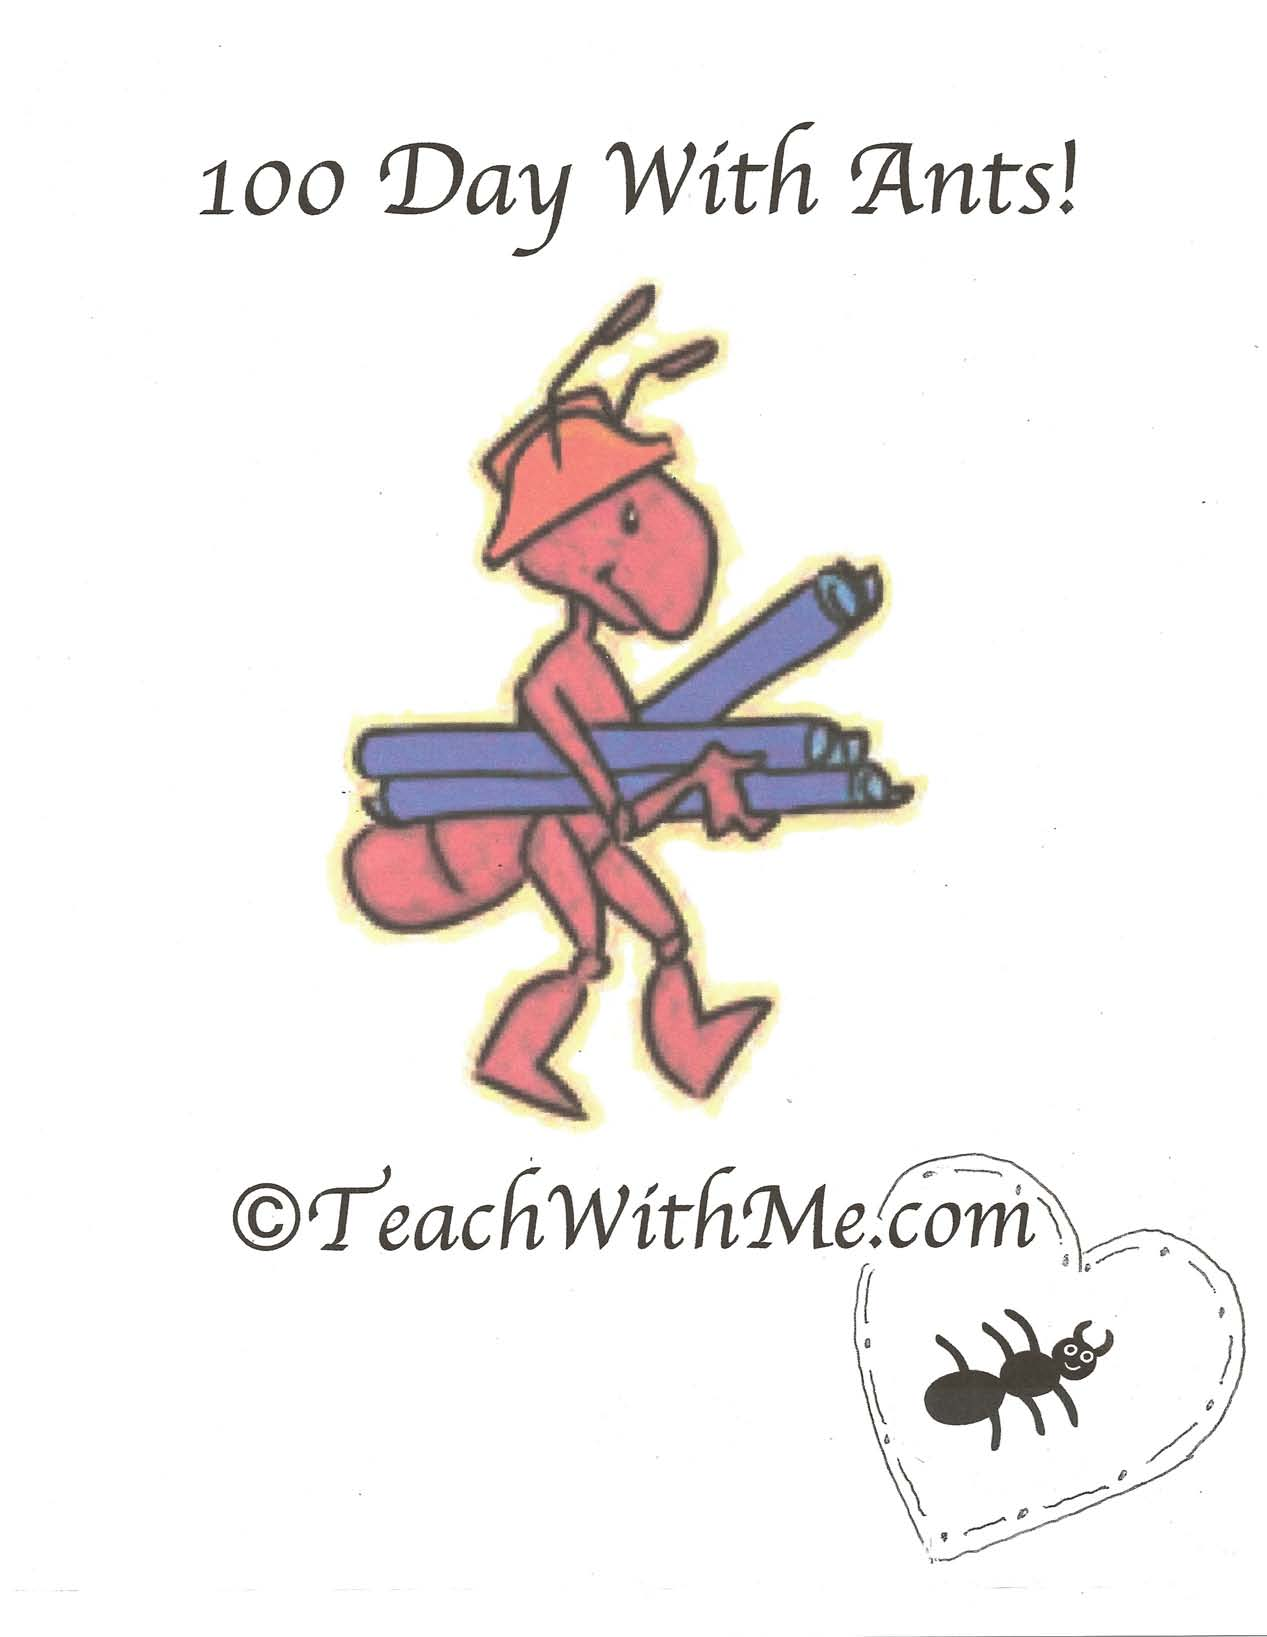 ant activities, ant crafts, the ants go marching song, the ants go marching video, ant lesson, 100 day activities, 100 day lessons, ideas for 100 day, 100 day crafts, 100 day centers, hippo activities, caterpillar activities, the very hungry caterpillar activities, ants in your pants craft, train activities, 100 day games,